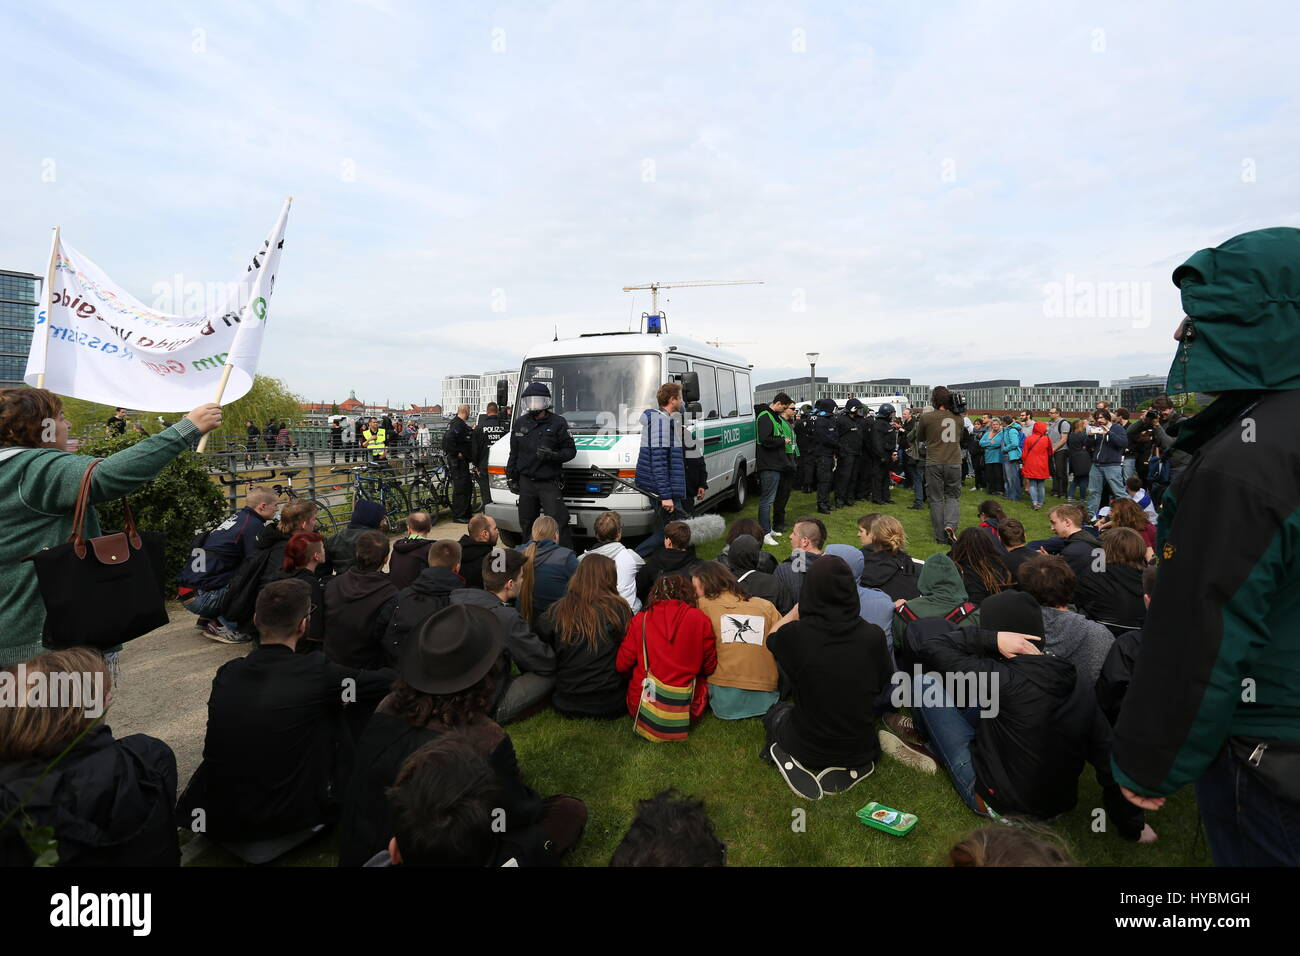 Berlin, Germany, May 9th, 2015: Antifa activists held sit blockade against the arrest of protesters. - Stock Image